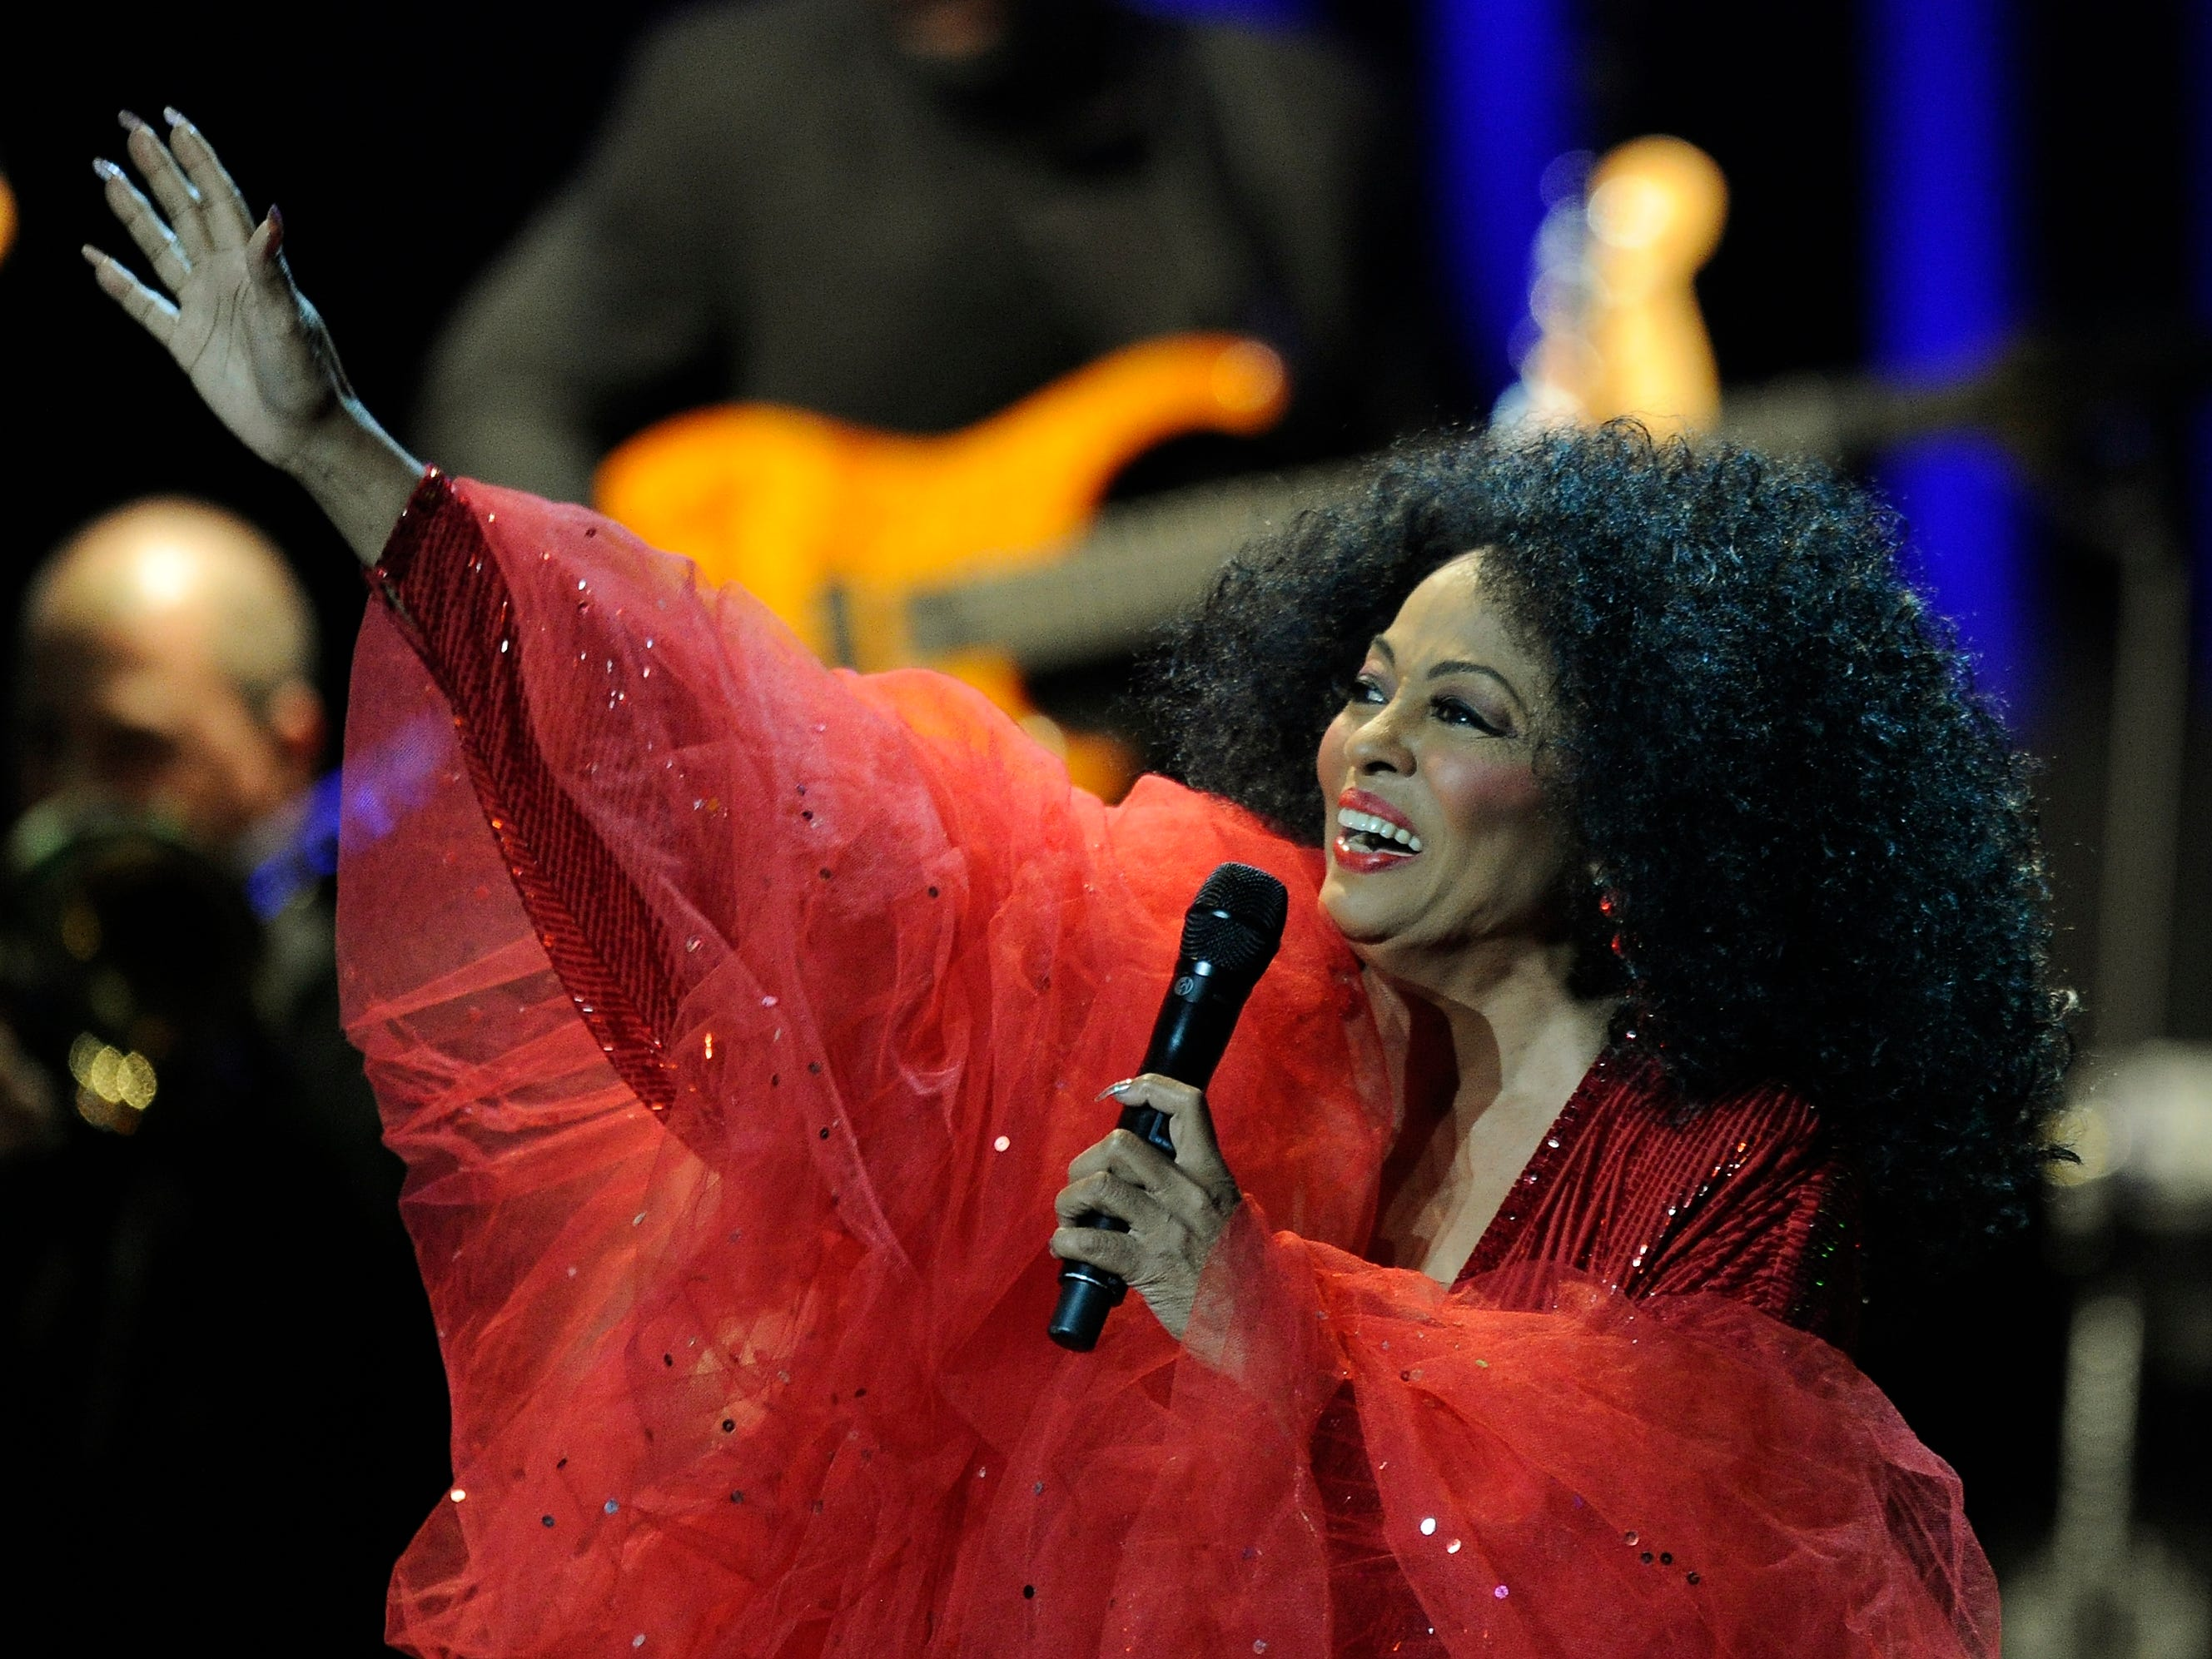 Diana Ross performs at the Sound Board at the Motor City Casino in Detroit on Aug. 25, 2013.